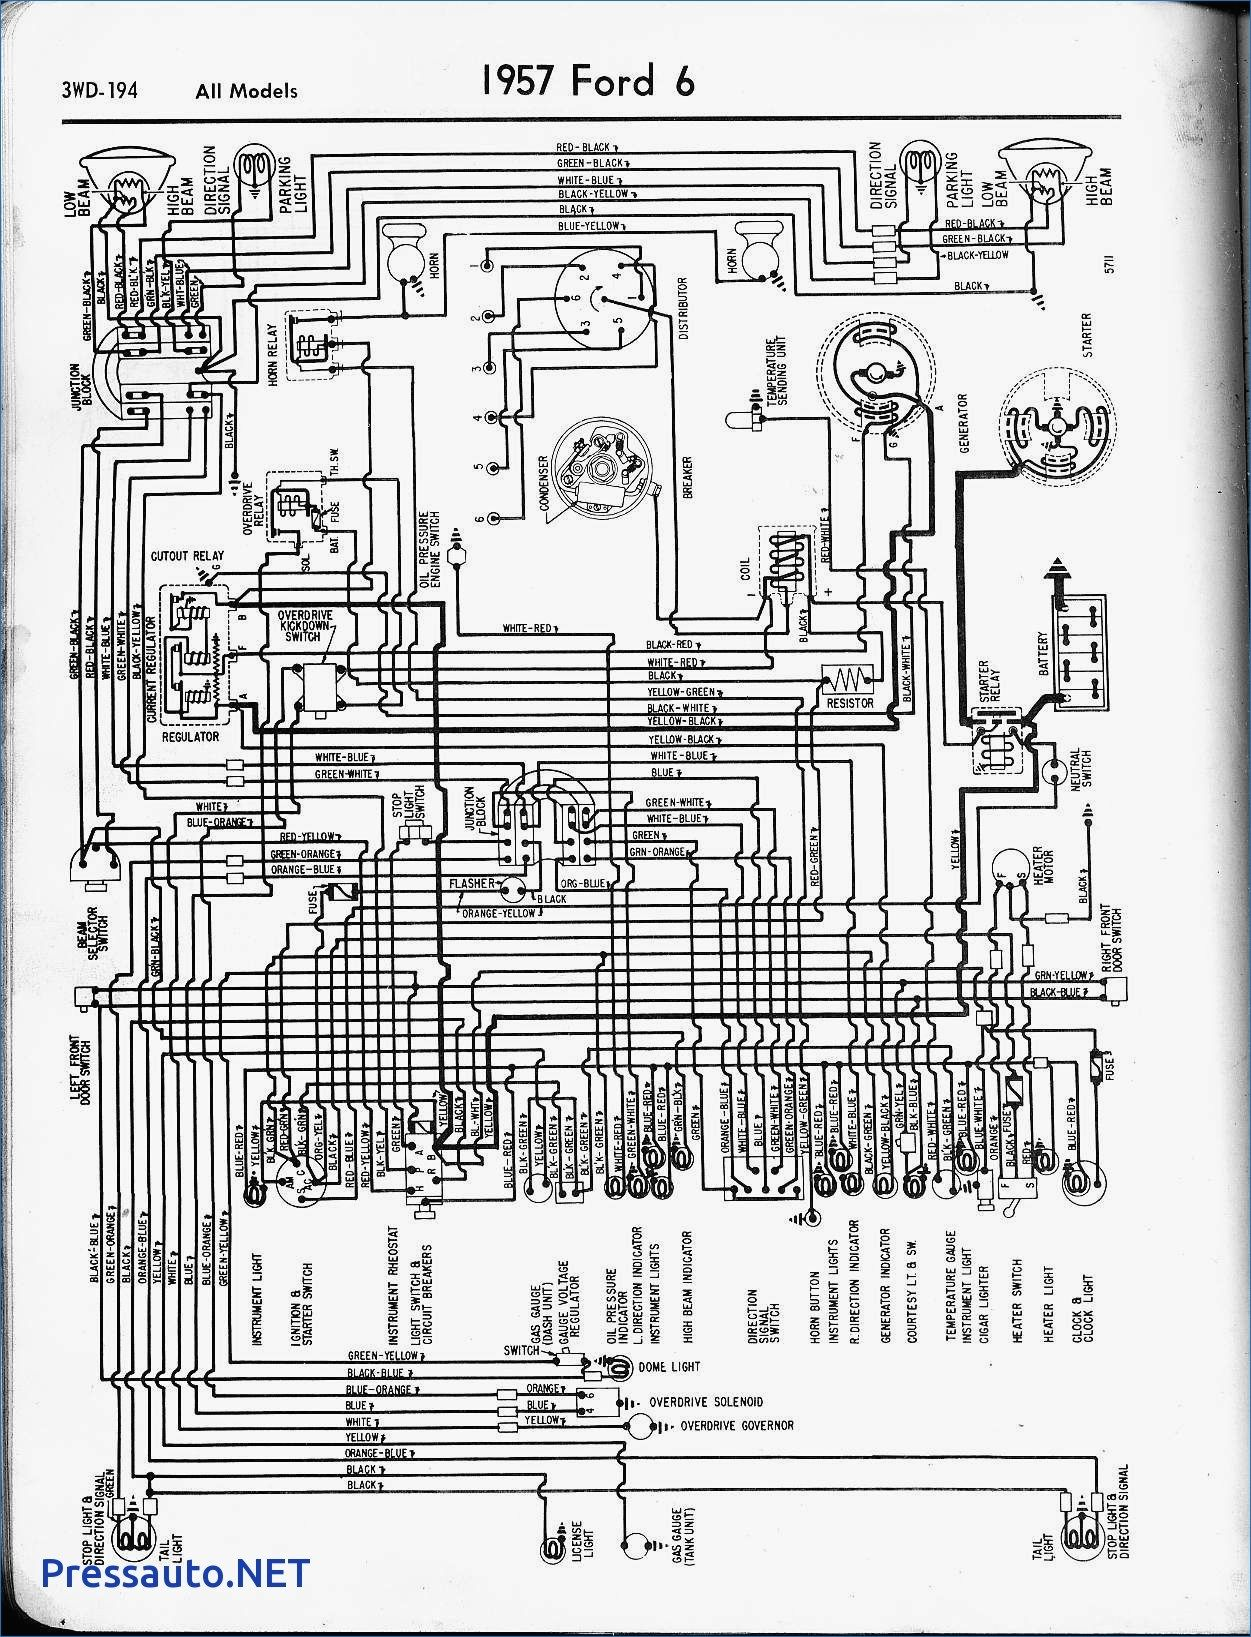 medium resolution of peugeot 307 power steering wiring diagram pressauto net in on rh pinterest com wiring diagram peugeot